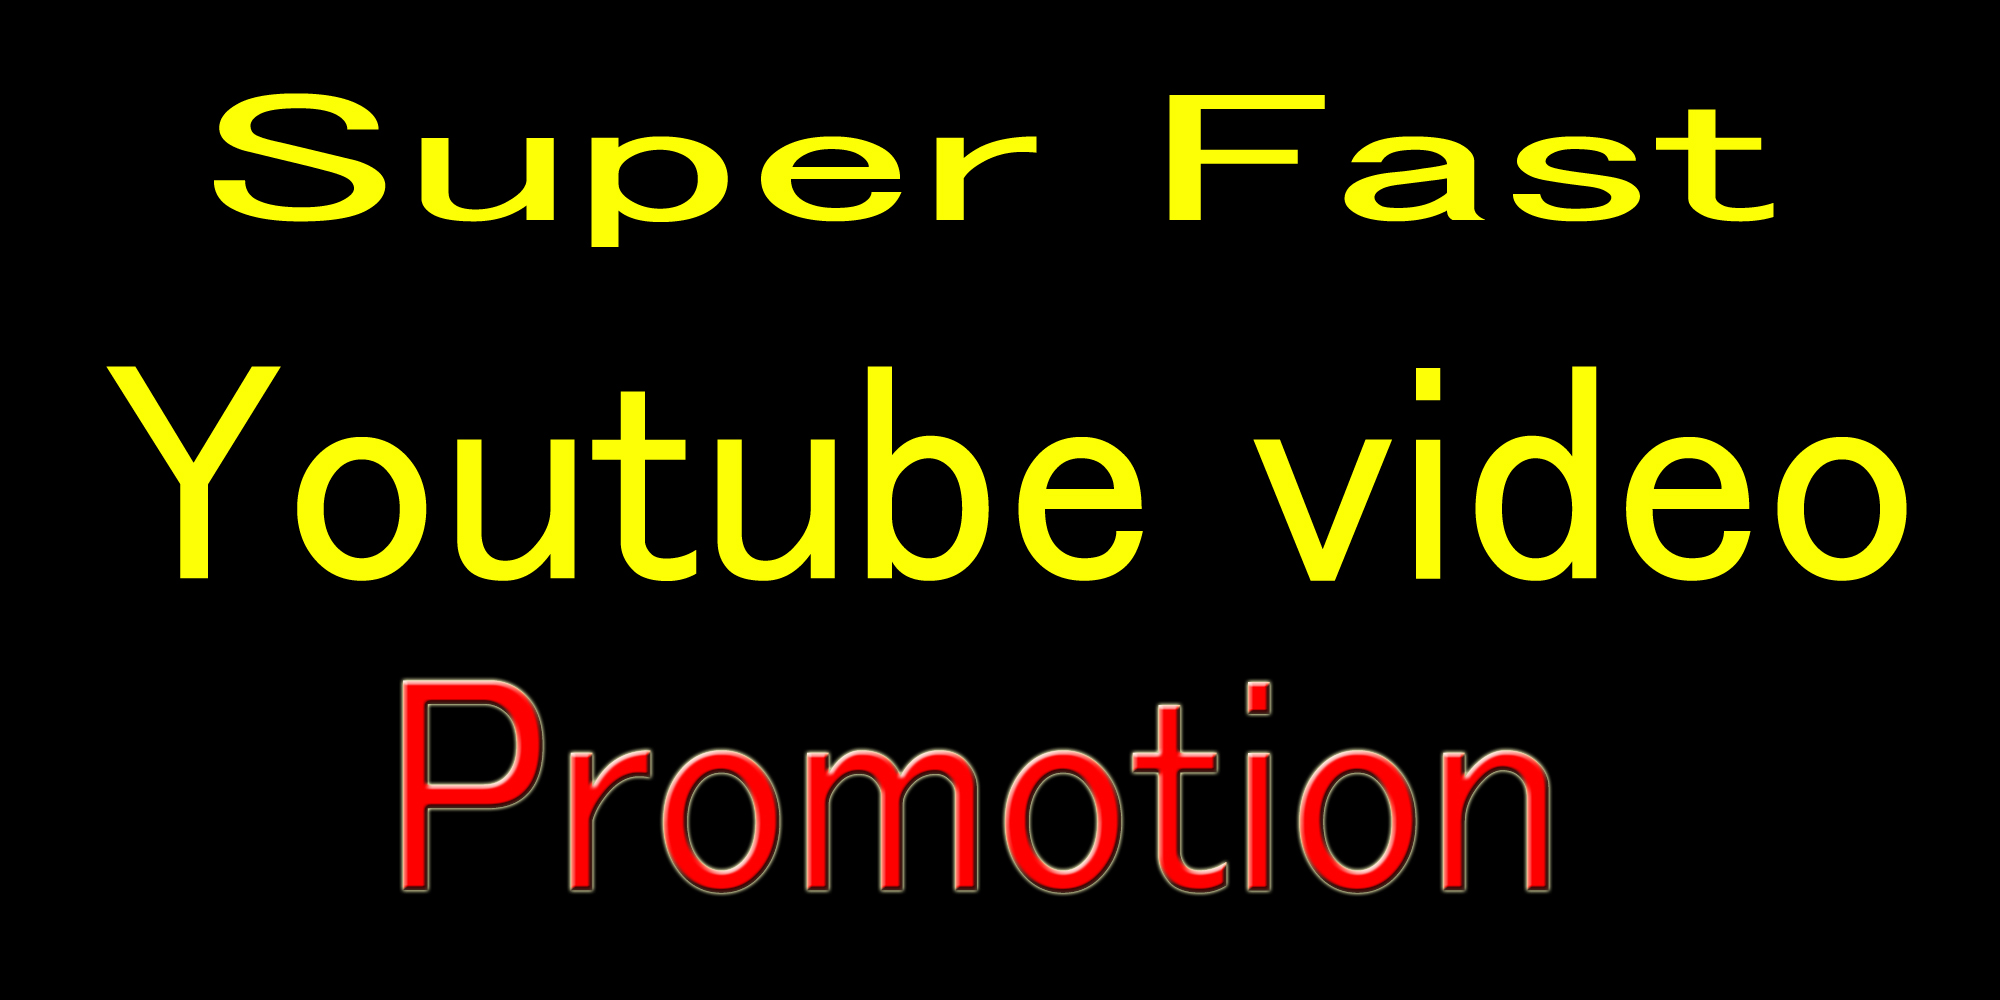 High Quality YouTube Video Promotion with good seo marketing